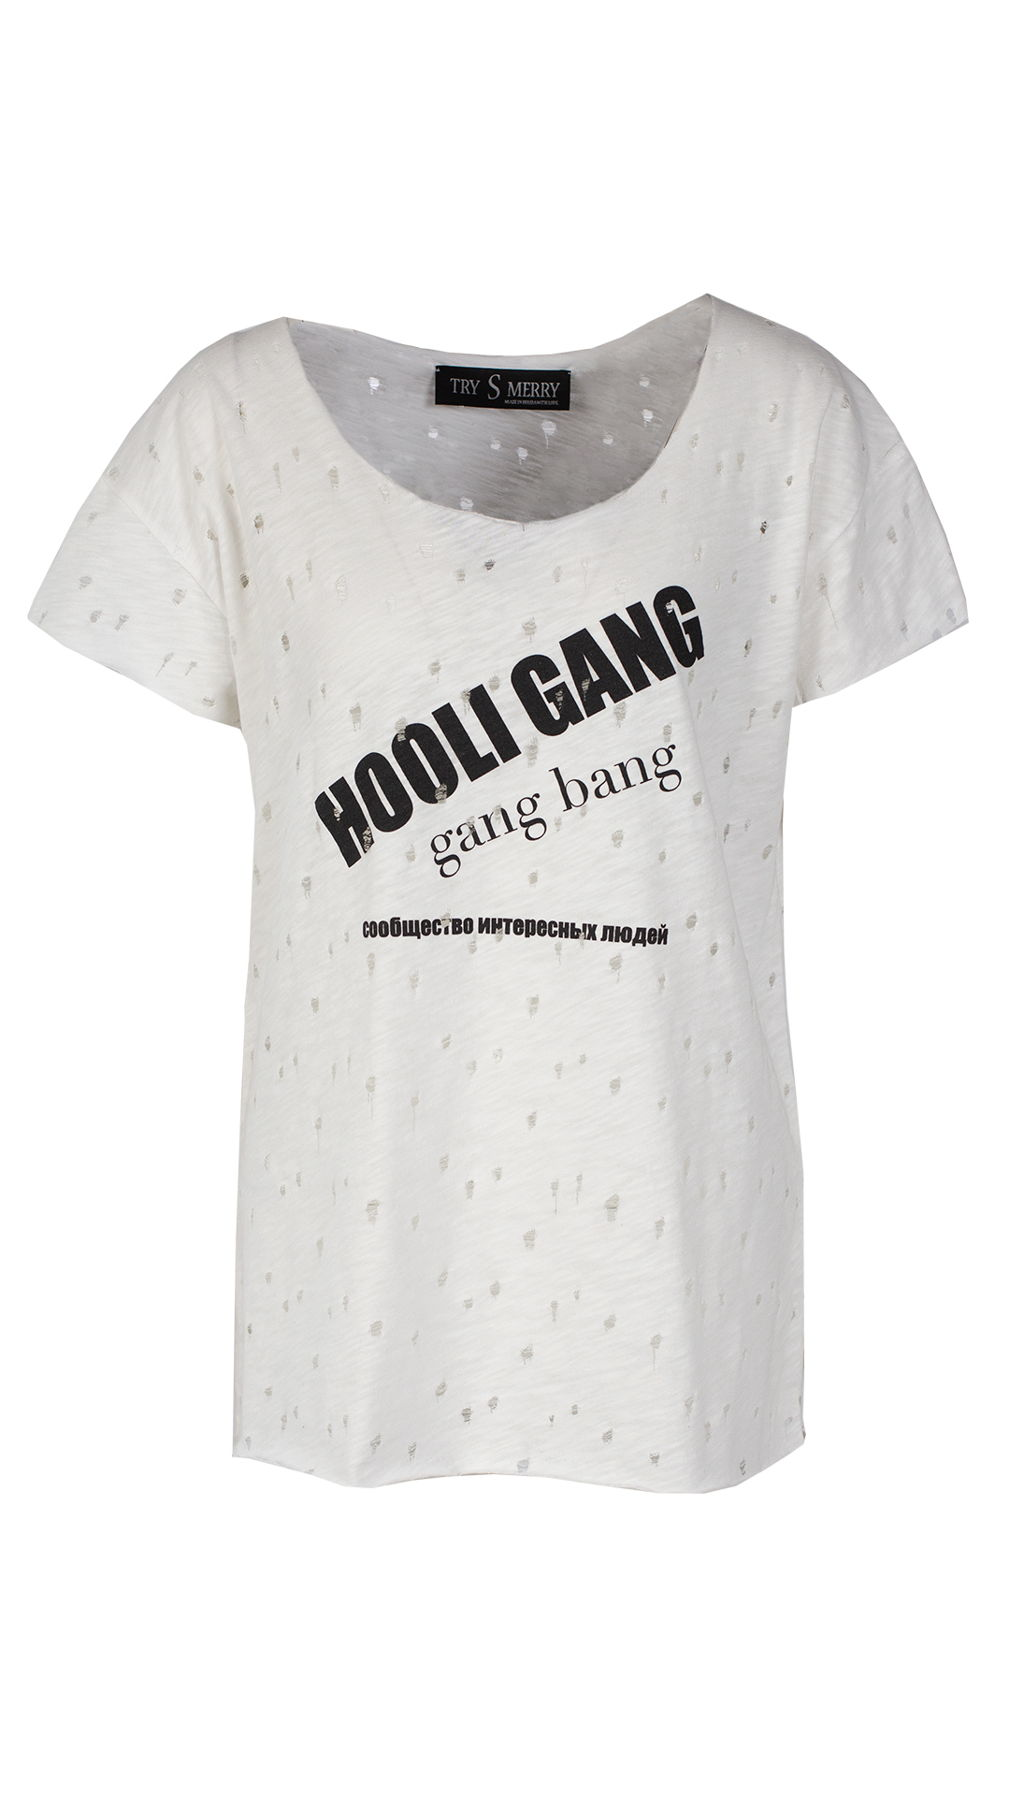 HooliGang white tshirt